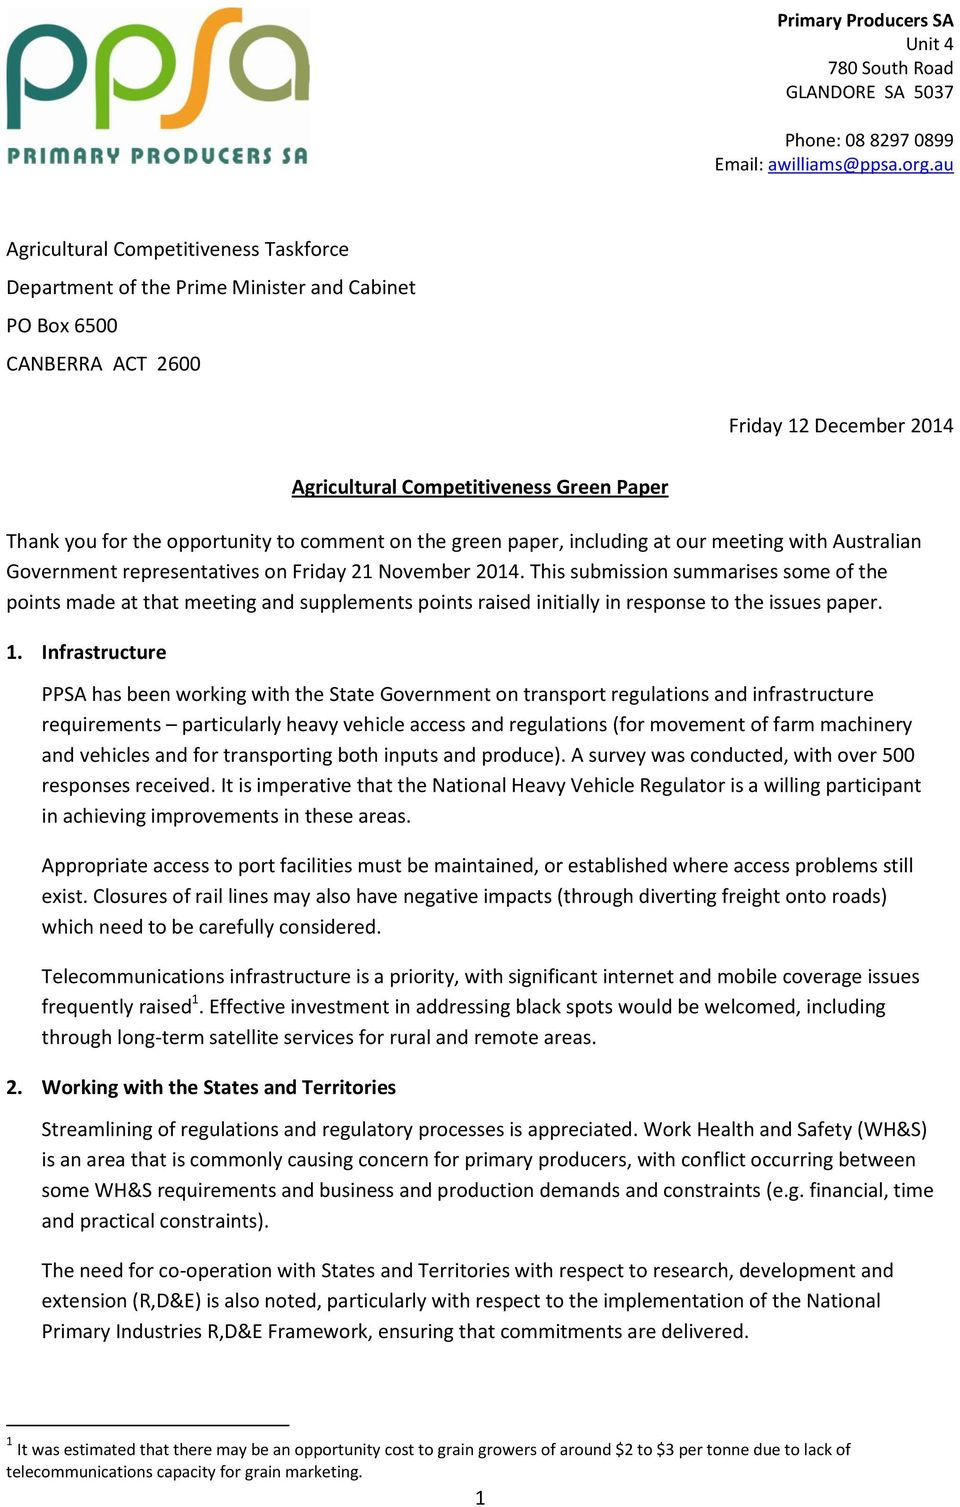 opportunity to comment on the green paper, including at our meeting with Australian Government representatives on Friday 21 November 2014.